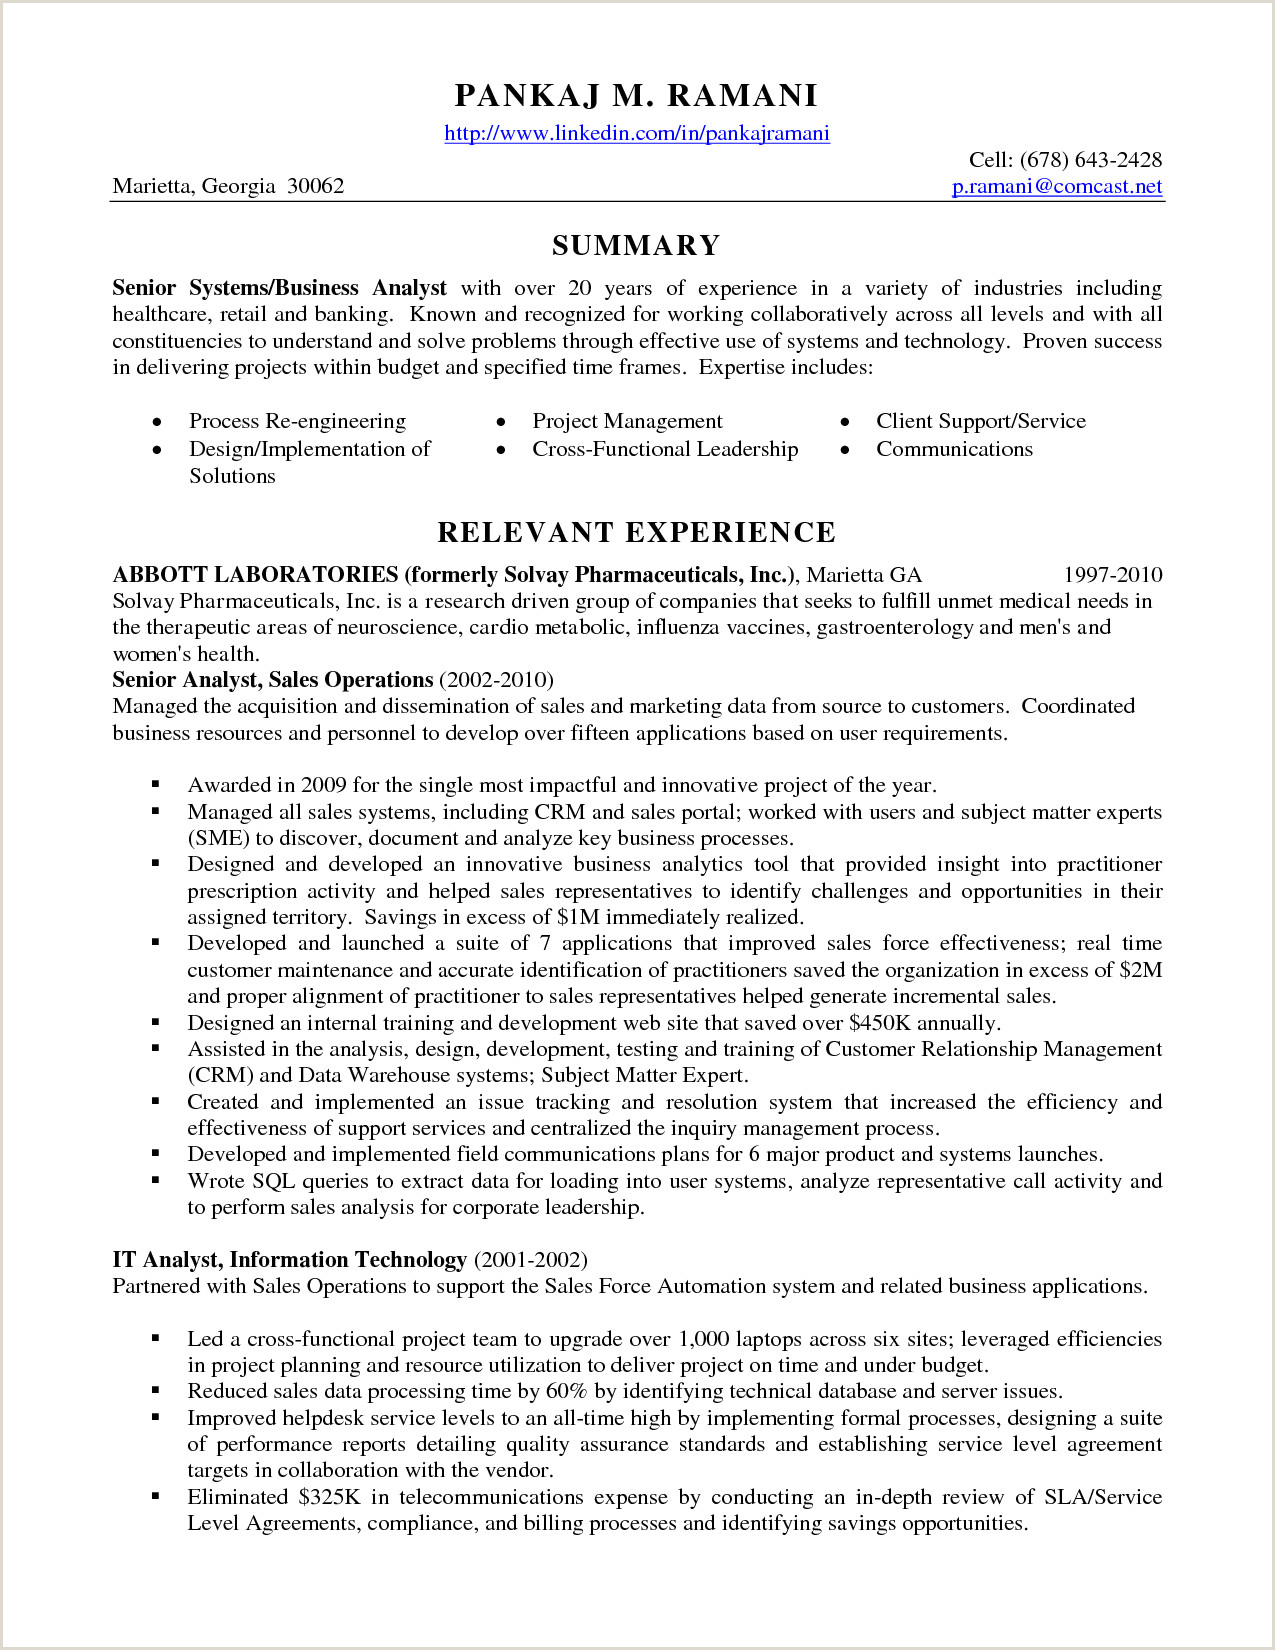 Resume format for Job Sales Senior Data Analyst Cv Resume format Best Resume Templates